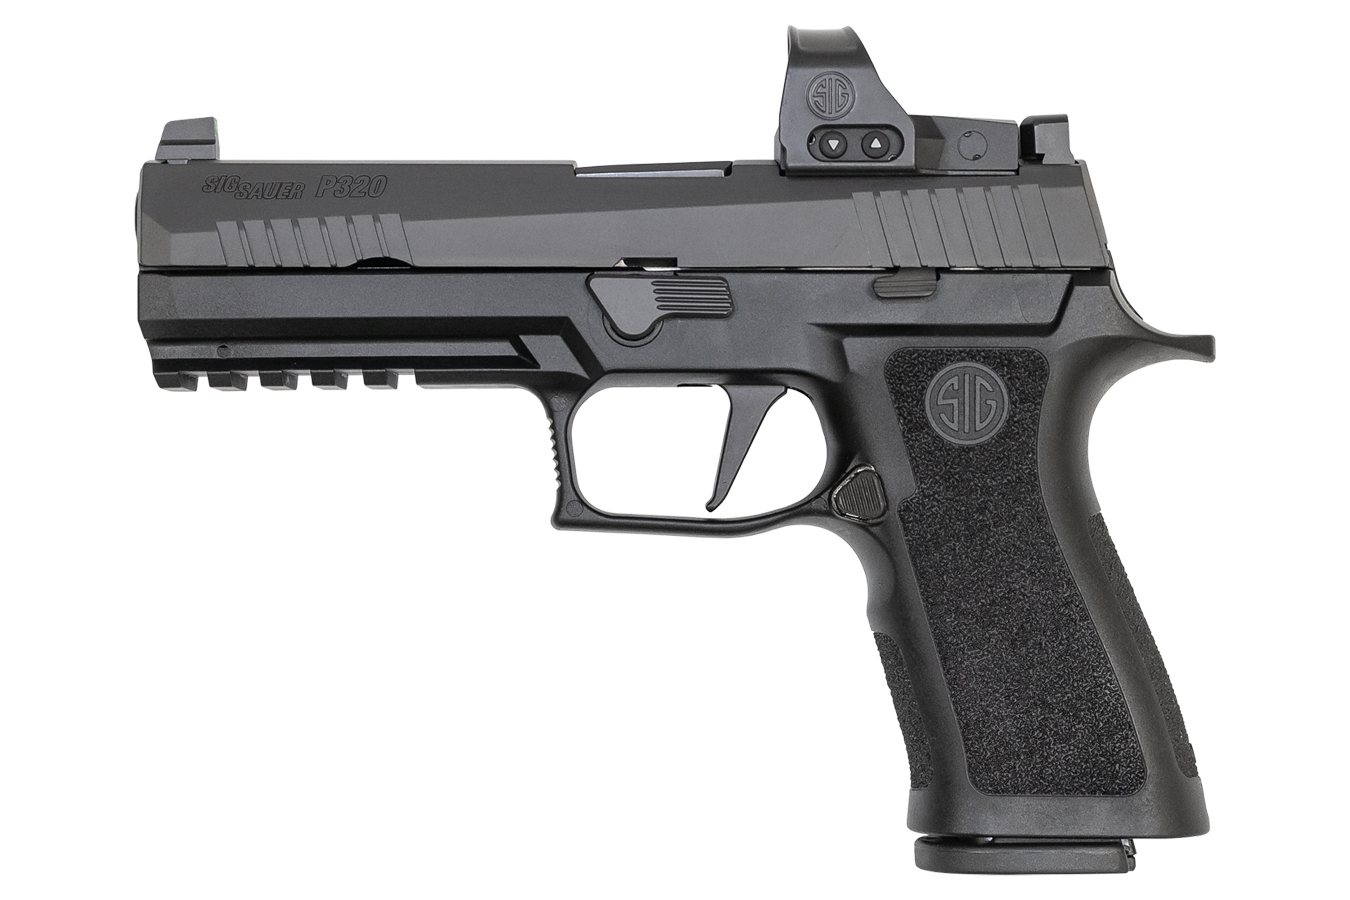 P320, 9MM,4.7`BARREL, PRO, BLK, X RAY SIGHTS, ROMEO 1 PRO, 3 MAGS, LONG DUST COV